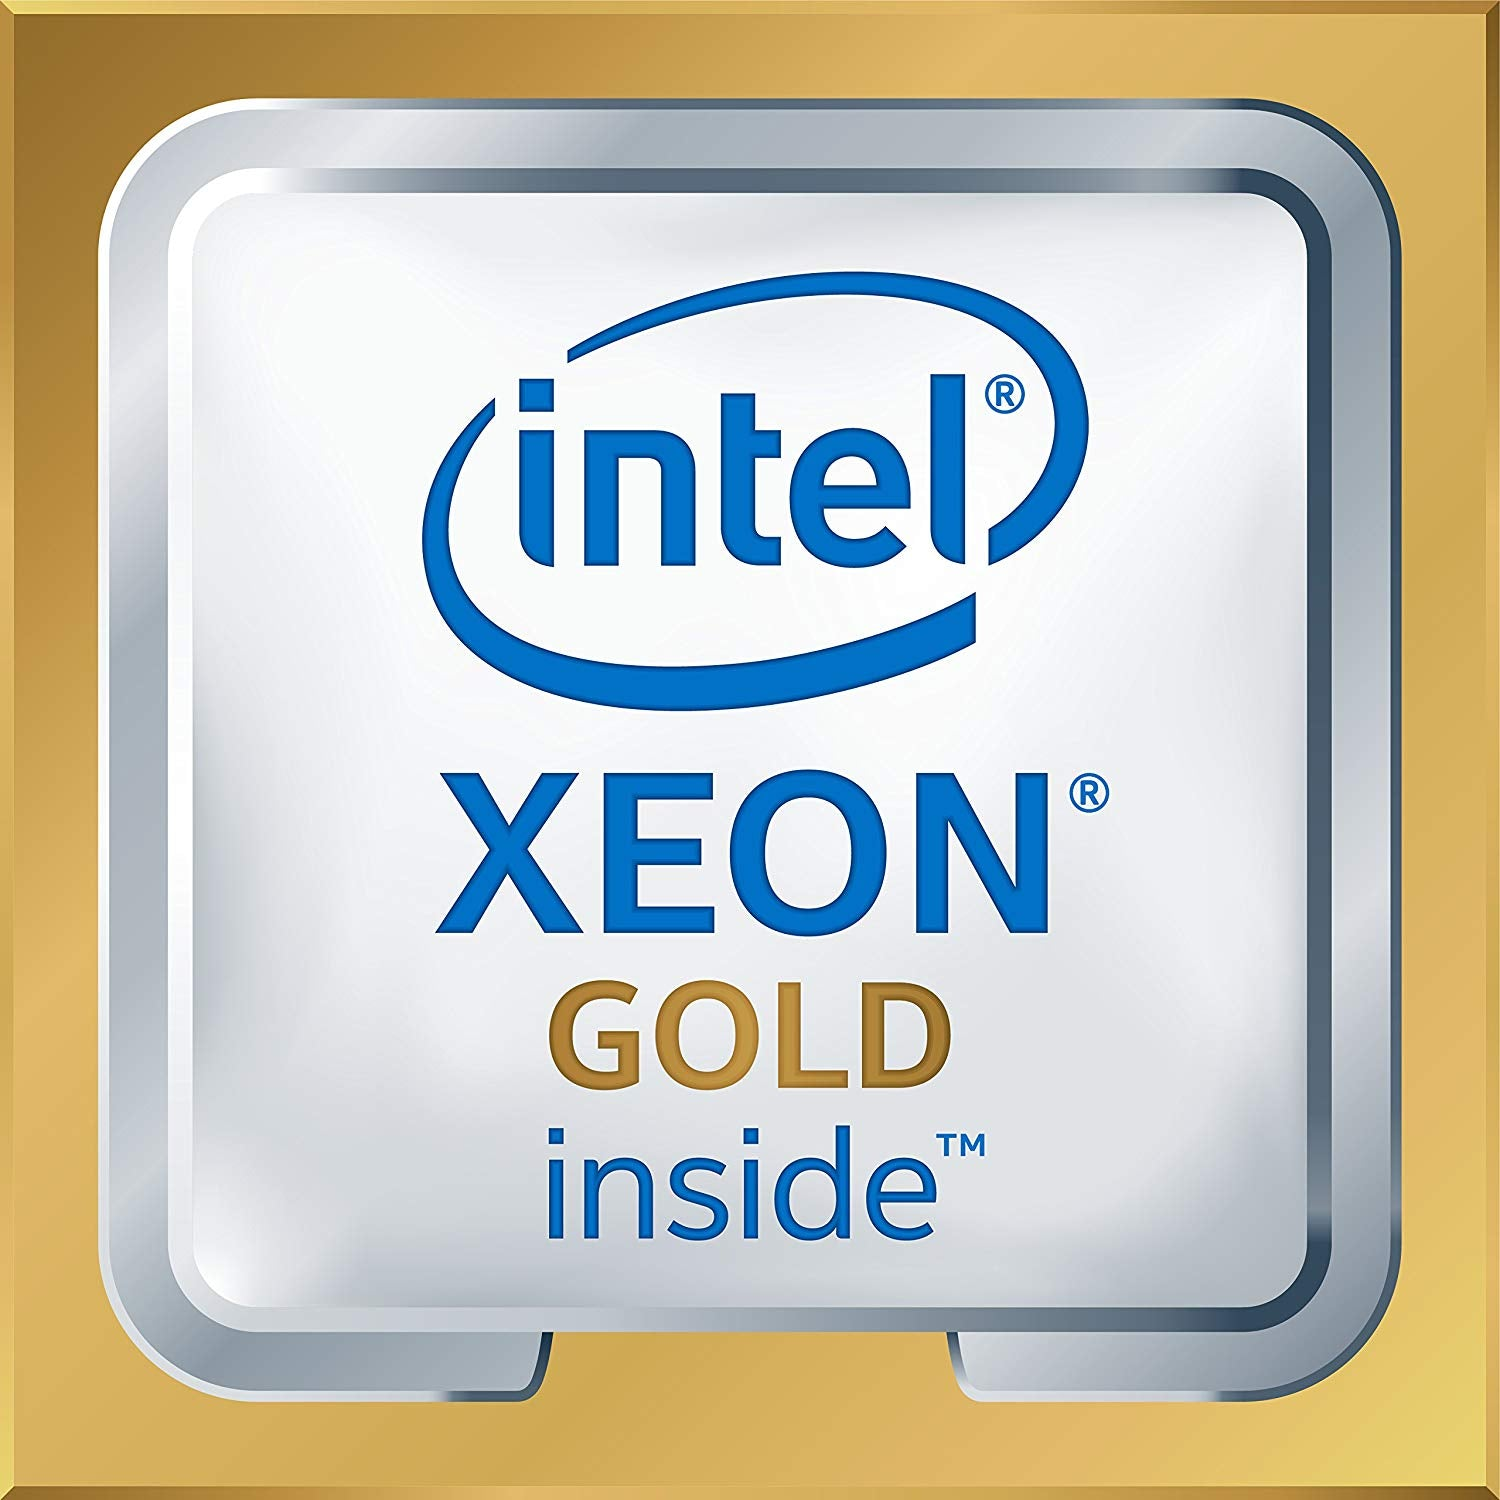 Intel Xeon Gold 5122 Quad Core 3.60GHz 10.40GT/s UPI 16.5MB L3 Cache Socket LGA3647 (SR3AT) Server Processor